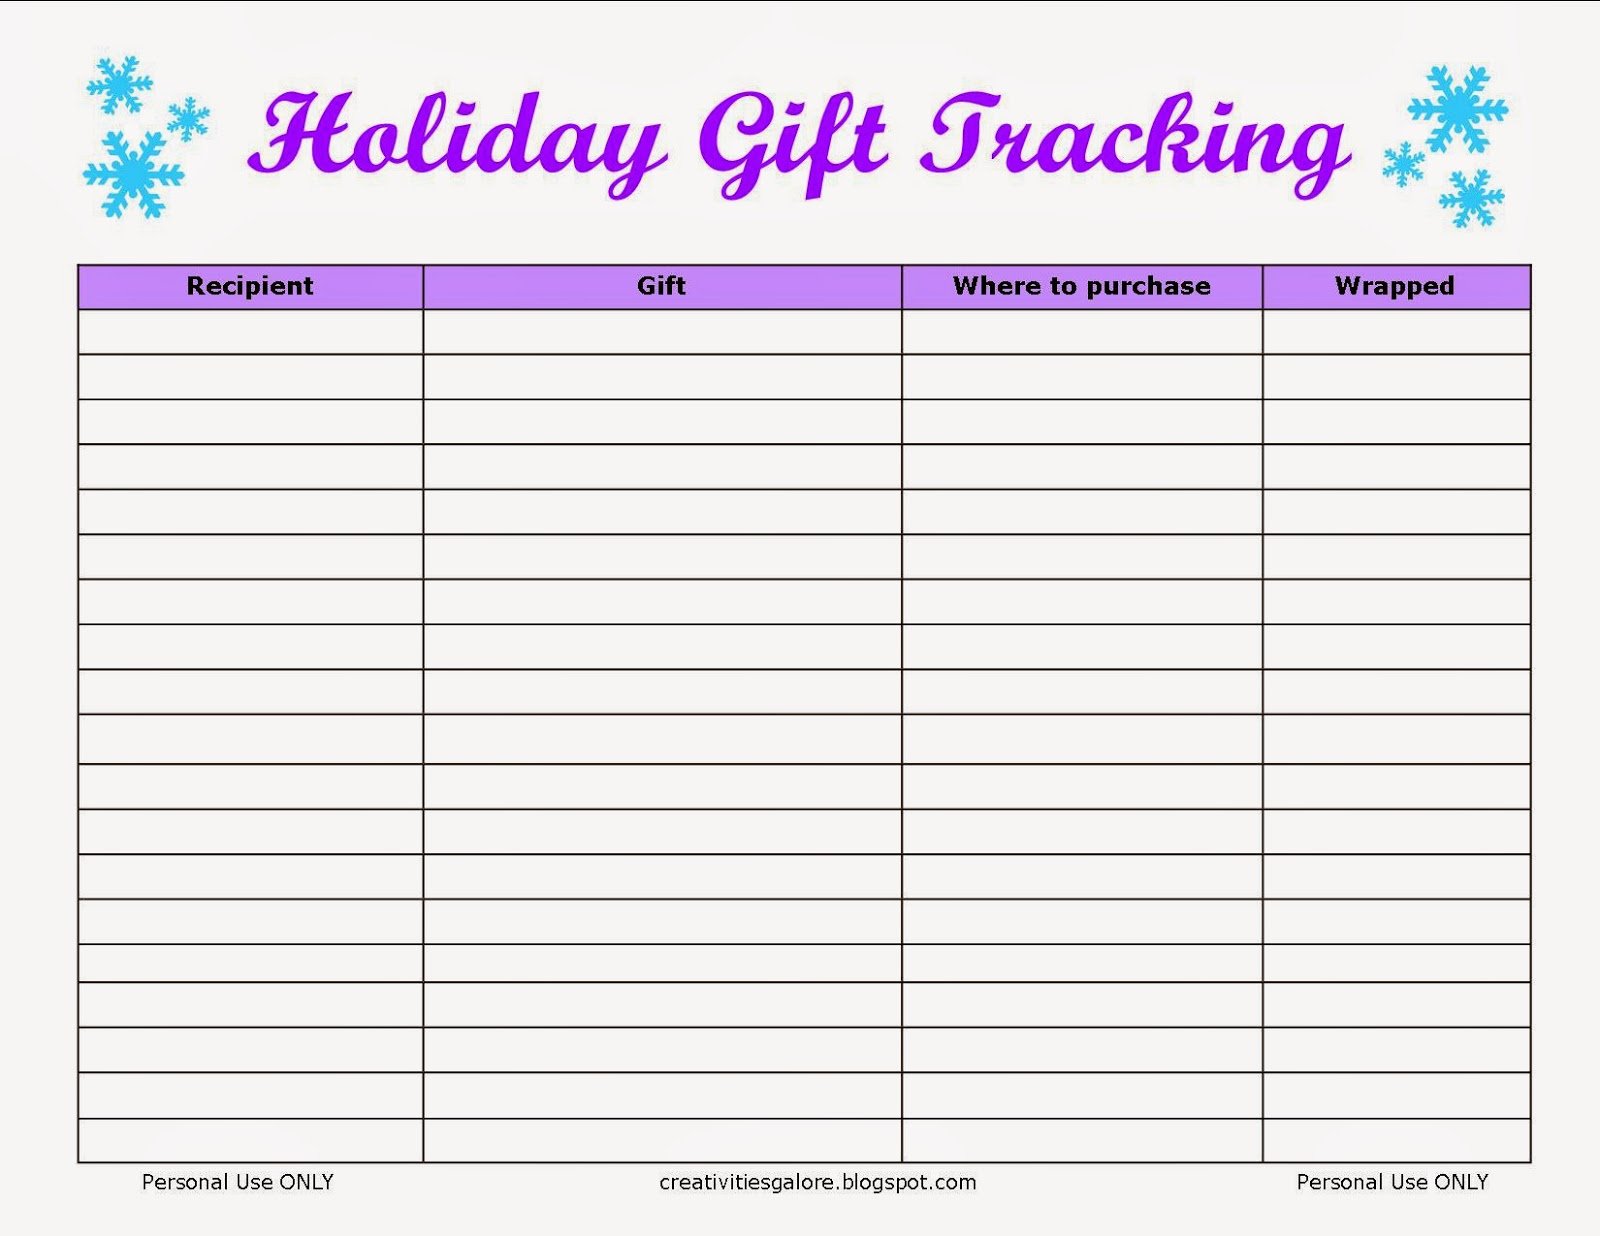 Wedding Gift List Tracker : Creativities Galore: FREE Holiday Gift Tracking Sheet